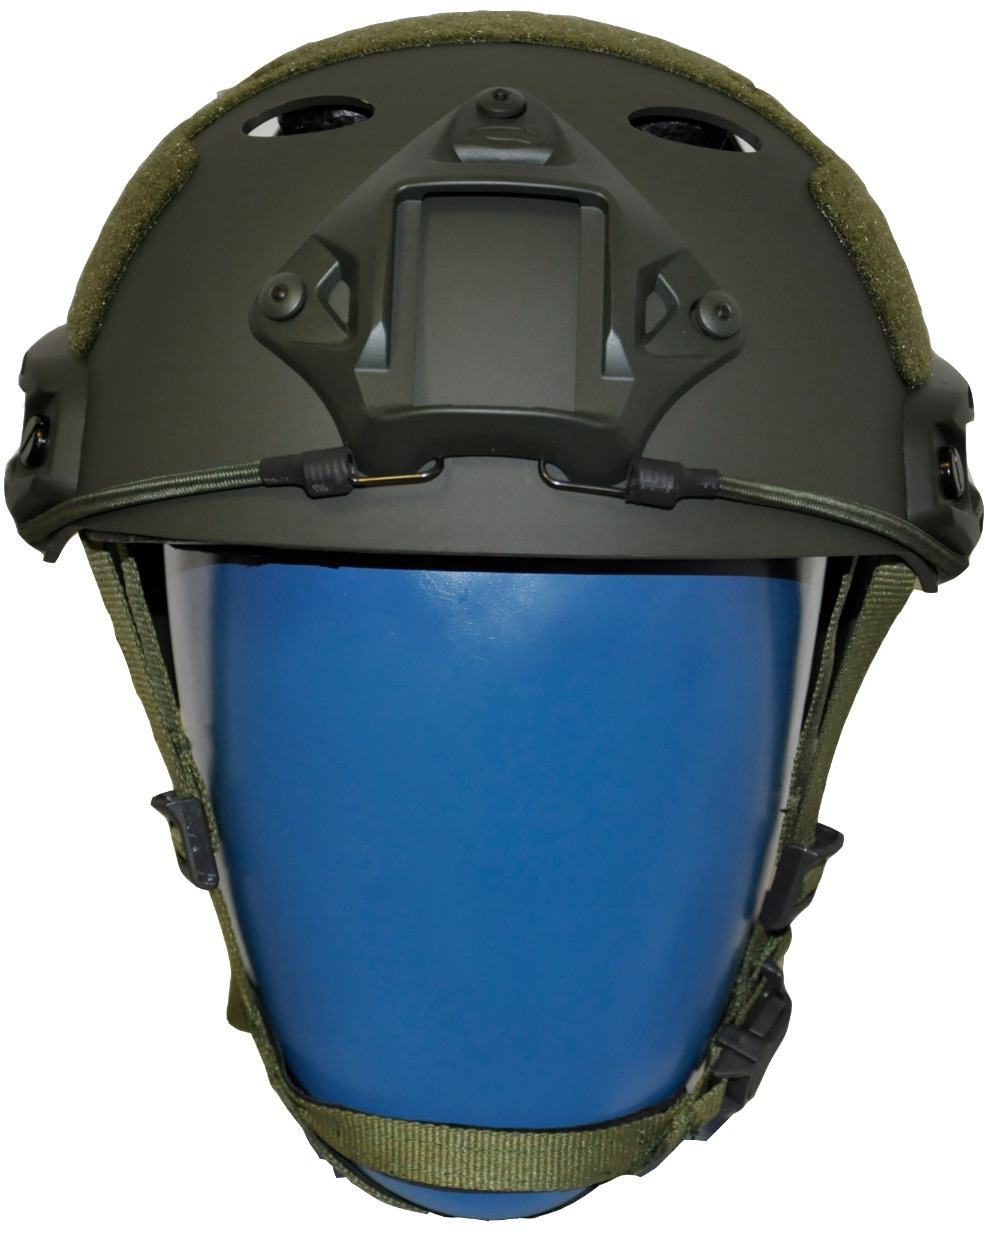 FAST OD PJ Carbon Style Vented Airsoft Tactical Helmet / Ops Core Style High Cut Training Helmet / FAST Ballistic Style Helmet.(China (Mainland))